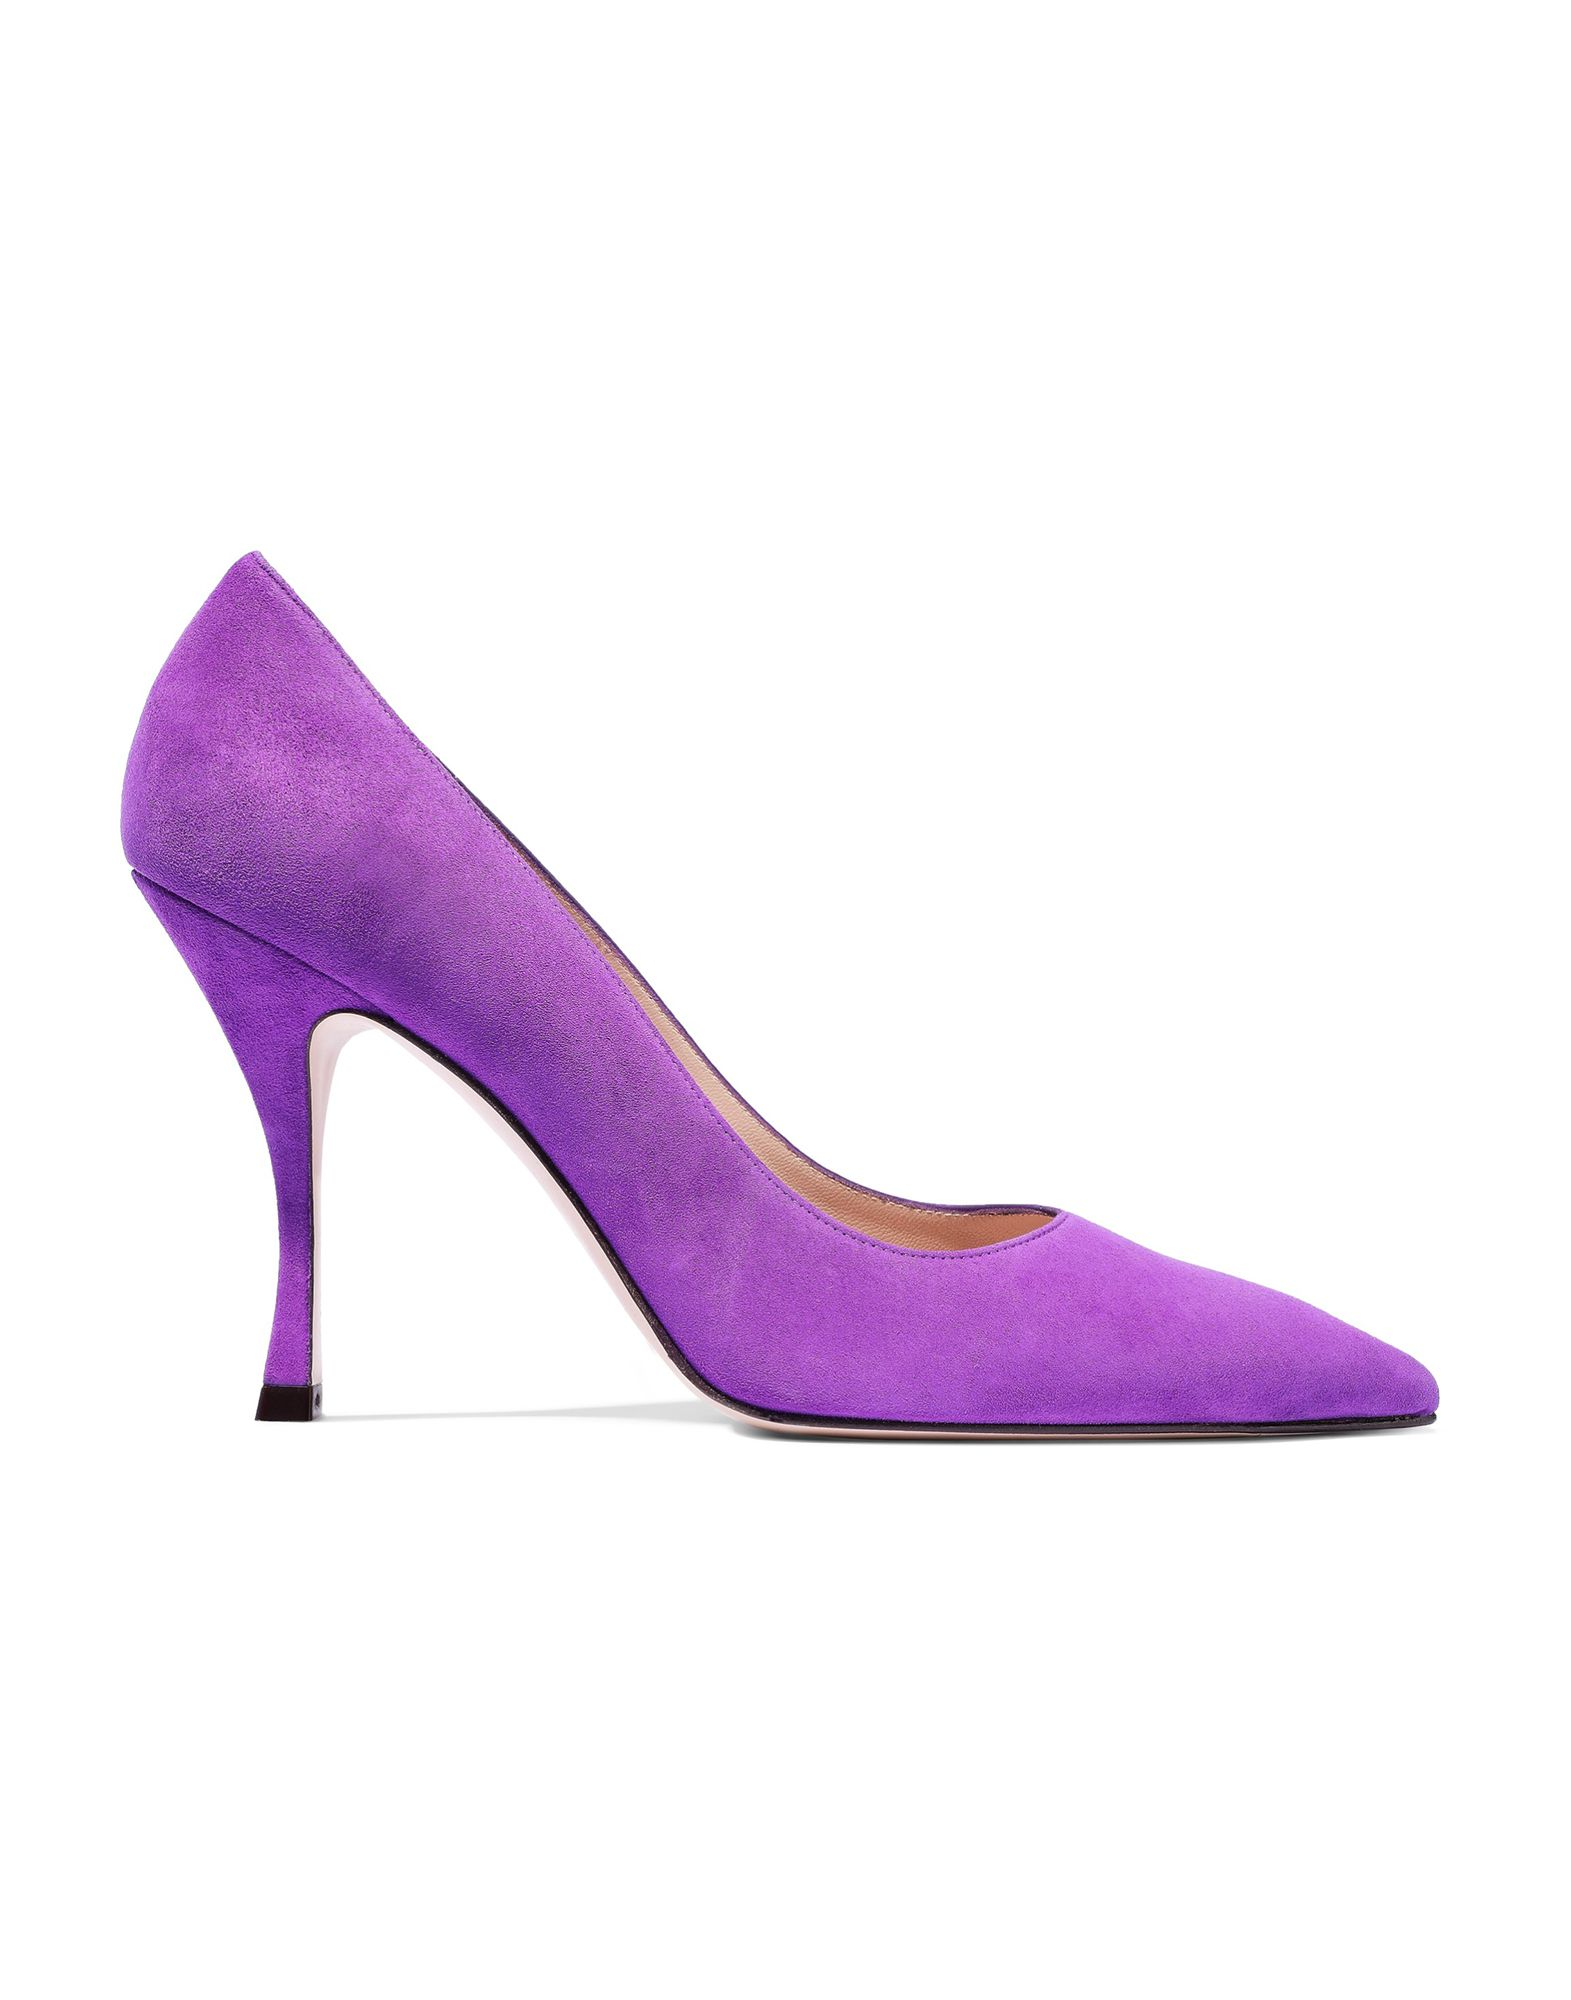 leather, suede effect, no appliqués, solid color, narrow toeline, spool heel, covered heel, leather